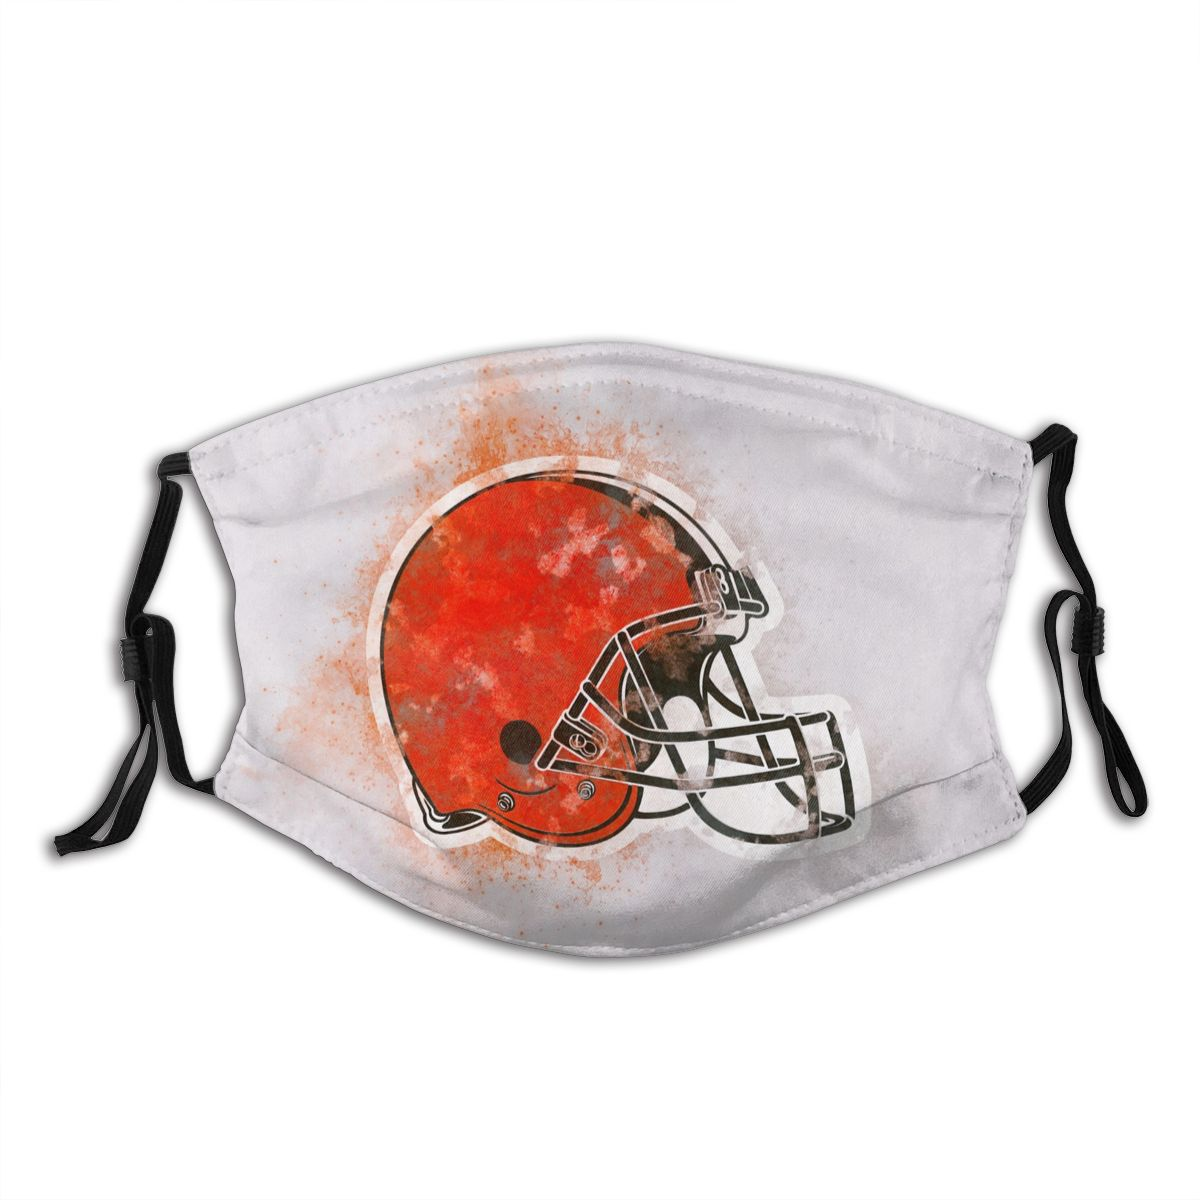 Browns Logo Adult Cloth Face Covering With Filter